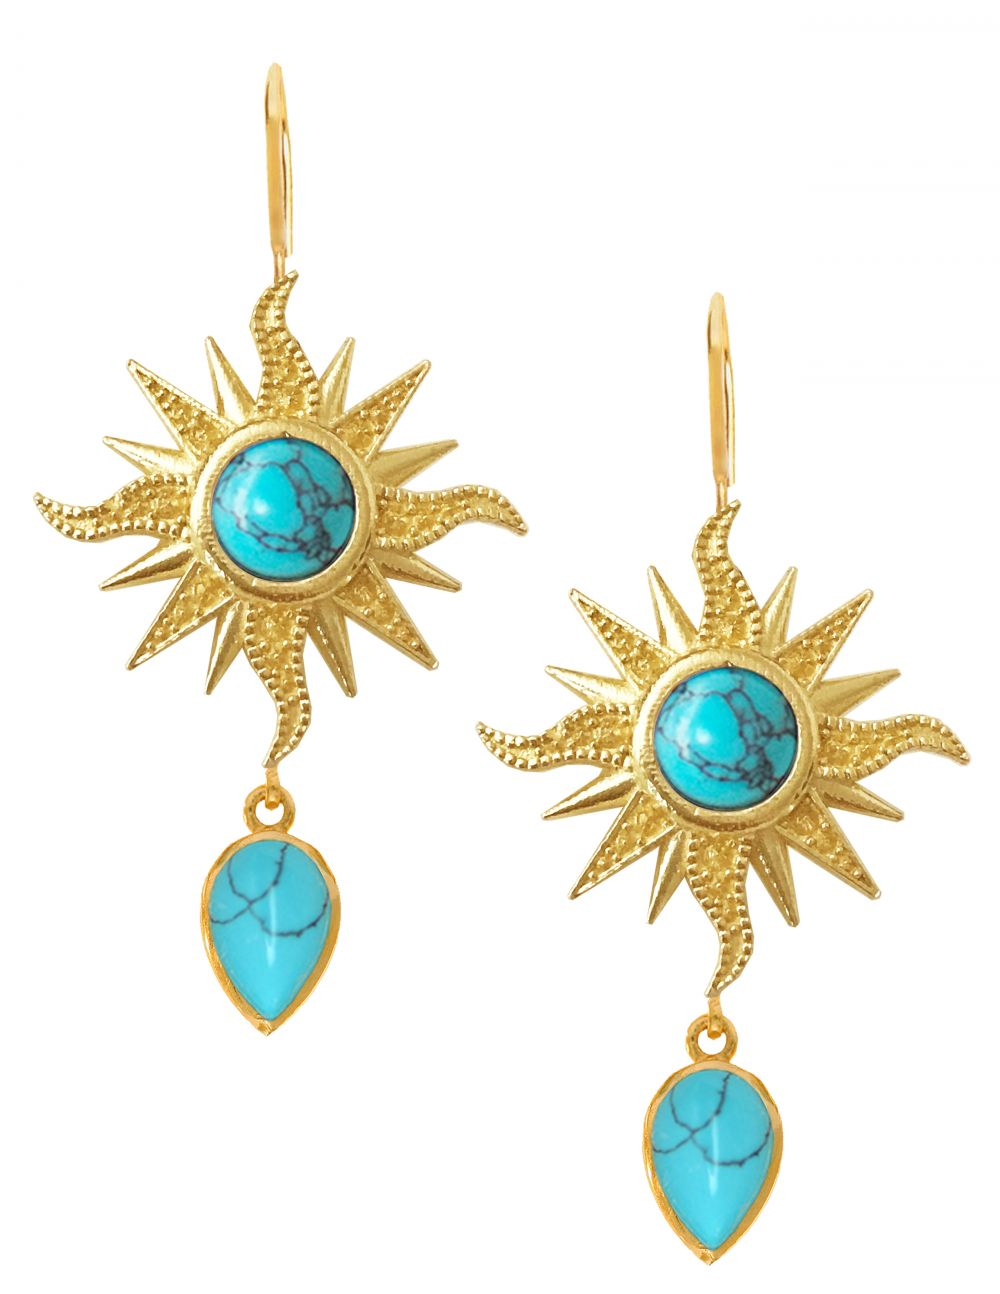 Helios Earrings<br /><i><small>18K Gold Plated with Turquoise</small></i><br />